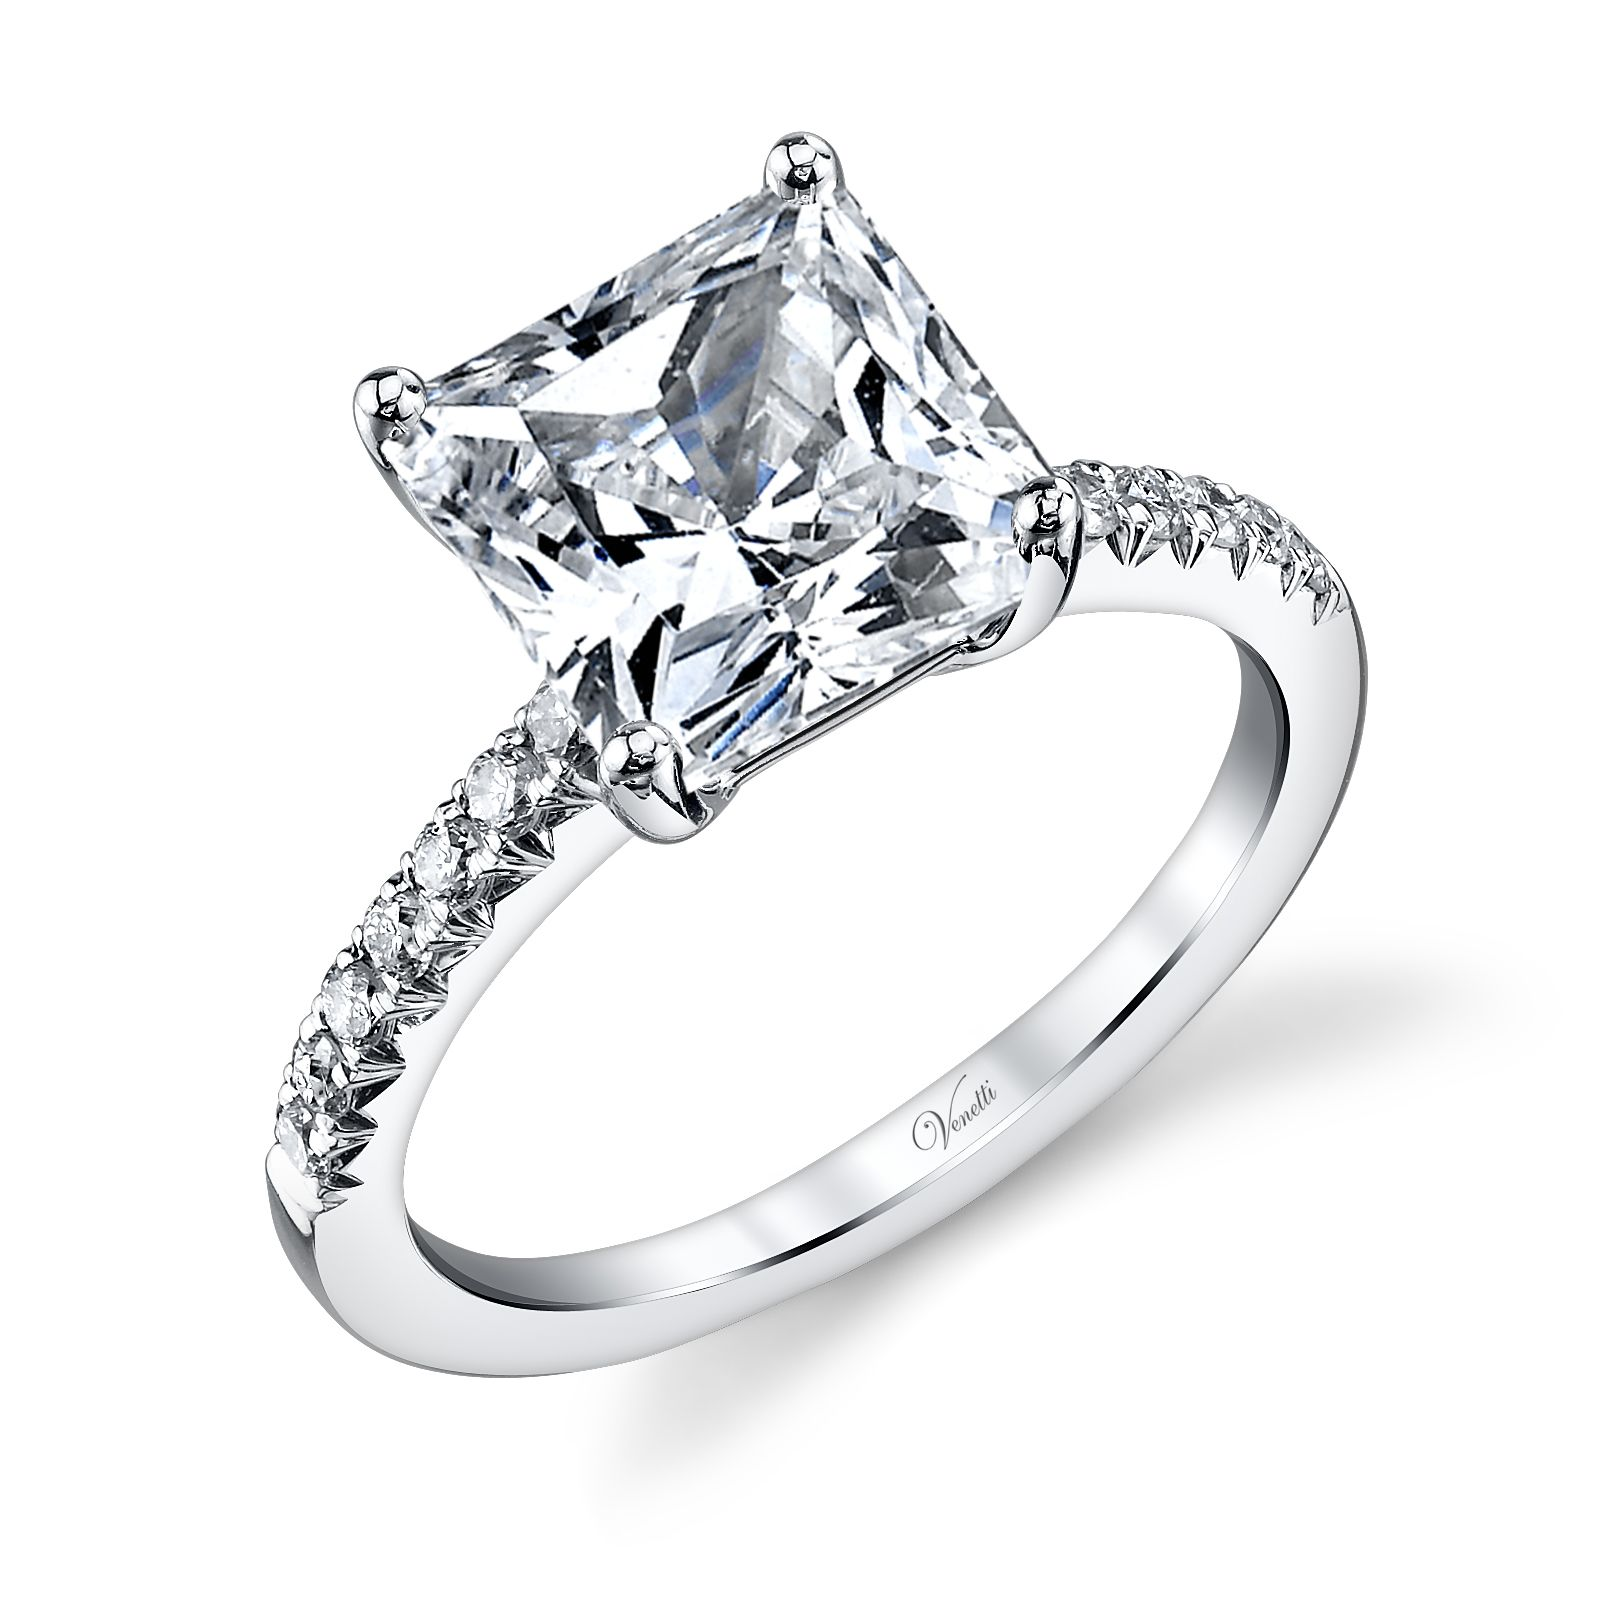 Square Shaped Diamond Engagement Ring. Available at